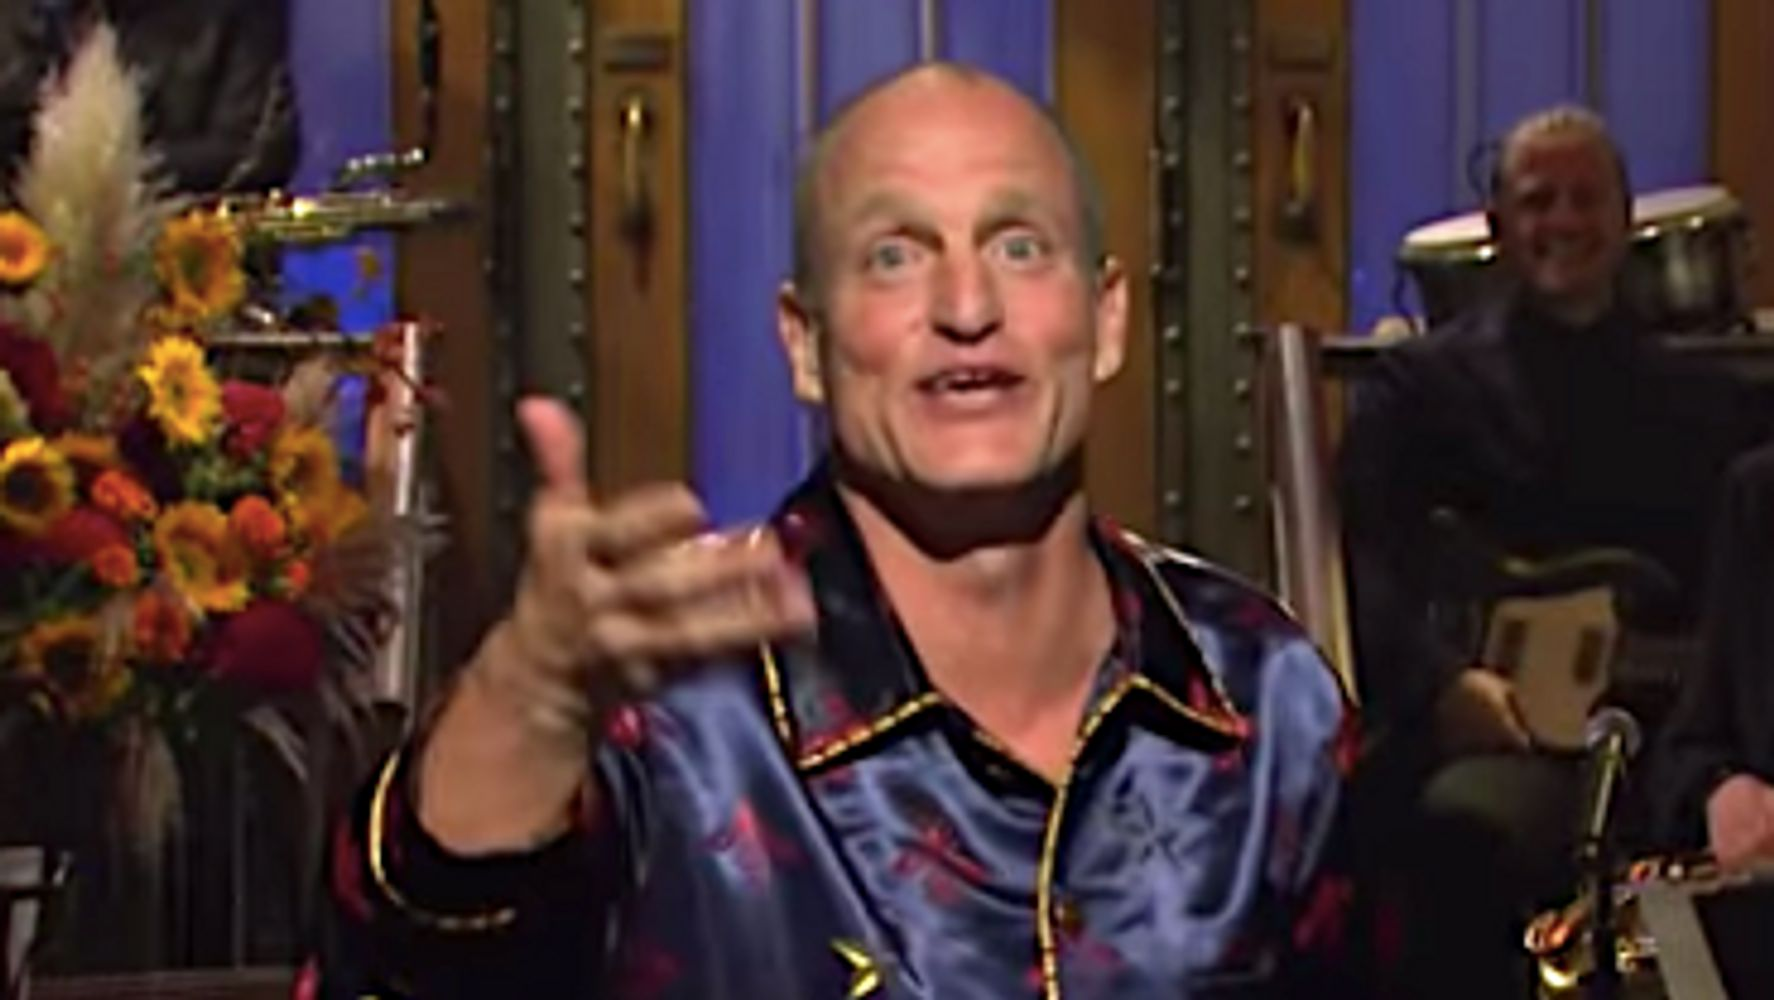 Westlake Legal Group 5d9058b92100005a00fd5d42 Woody Harrelson Calls Melania Sole Immigrant Who Watches Fox In Quirky 'SNL' Monologue